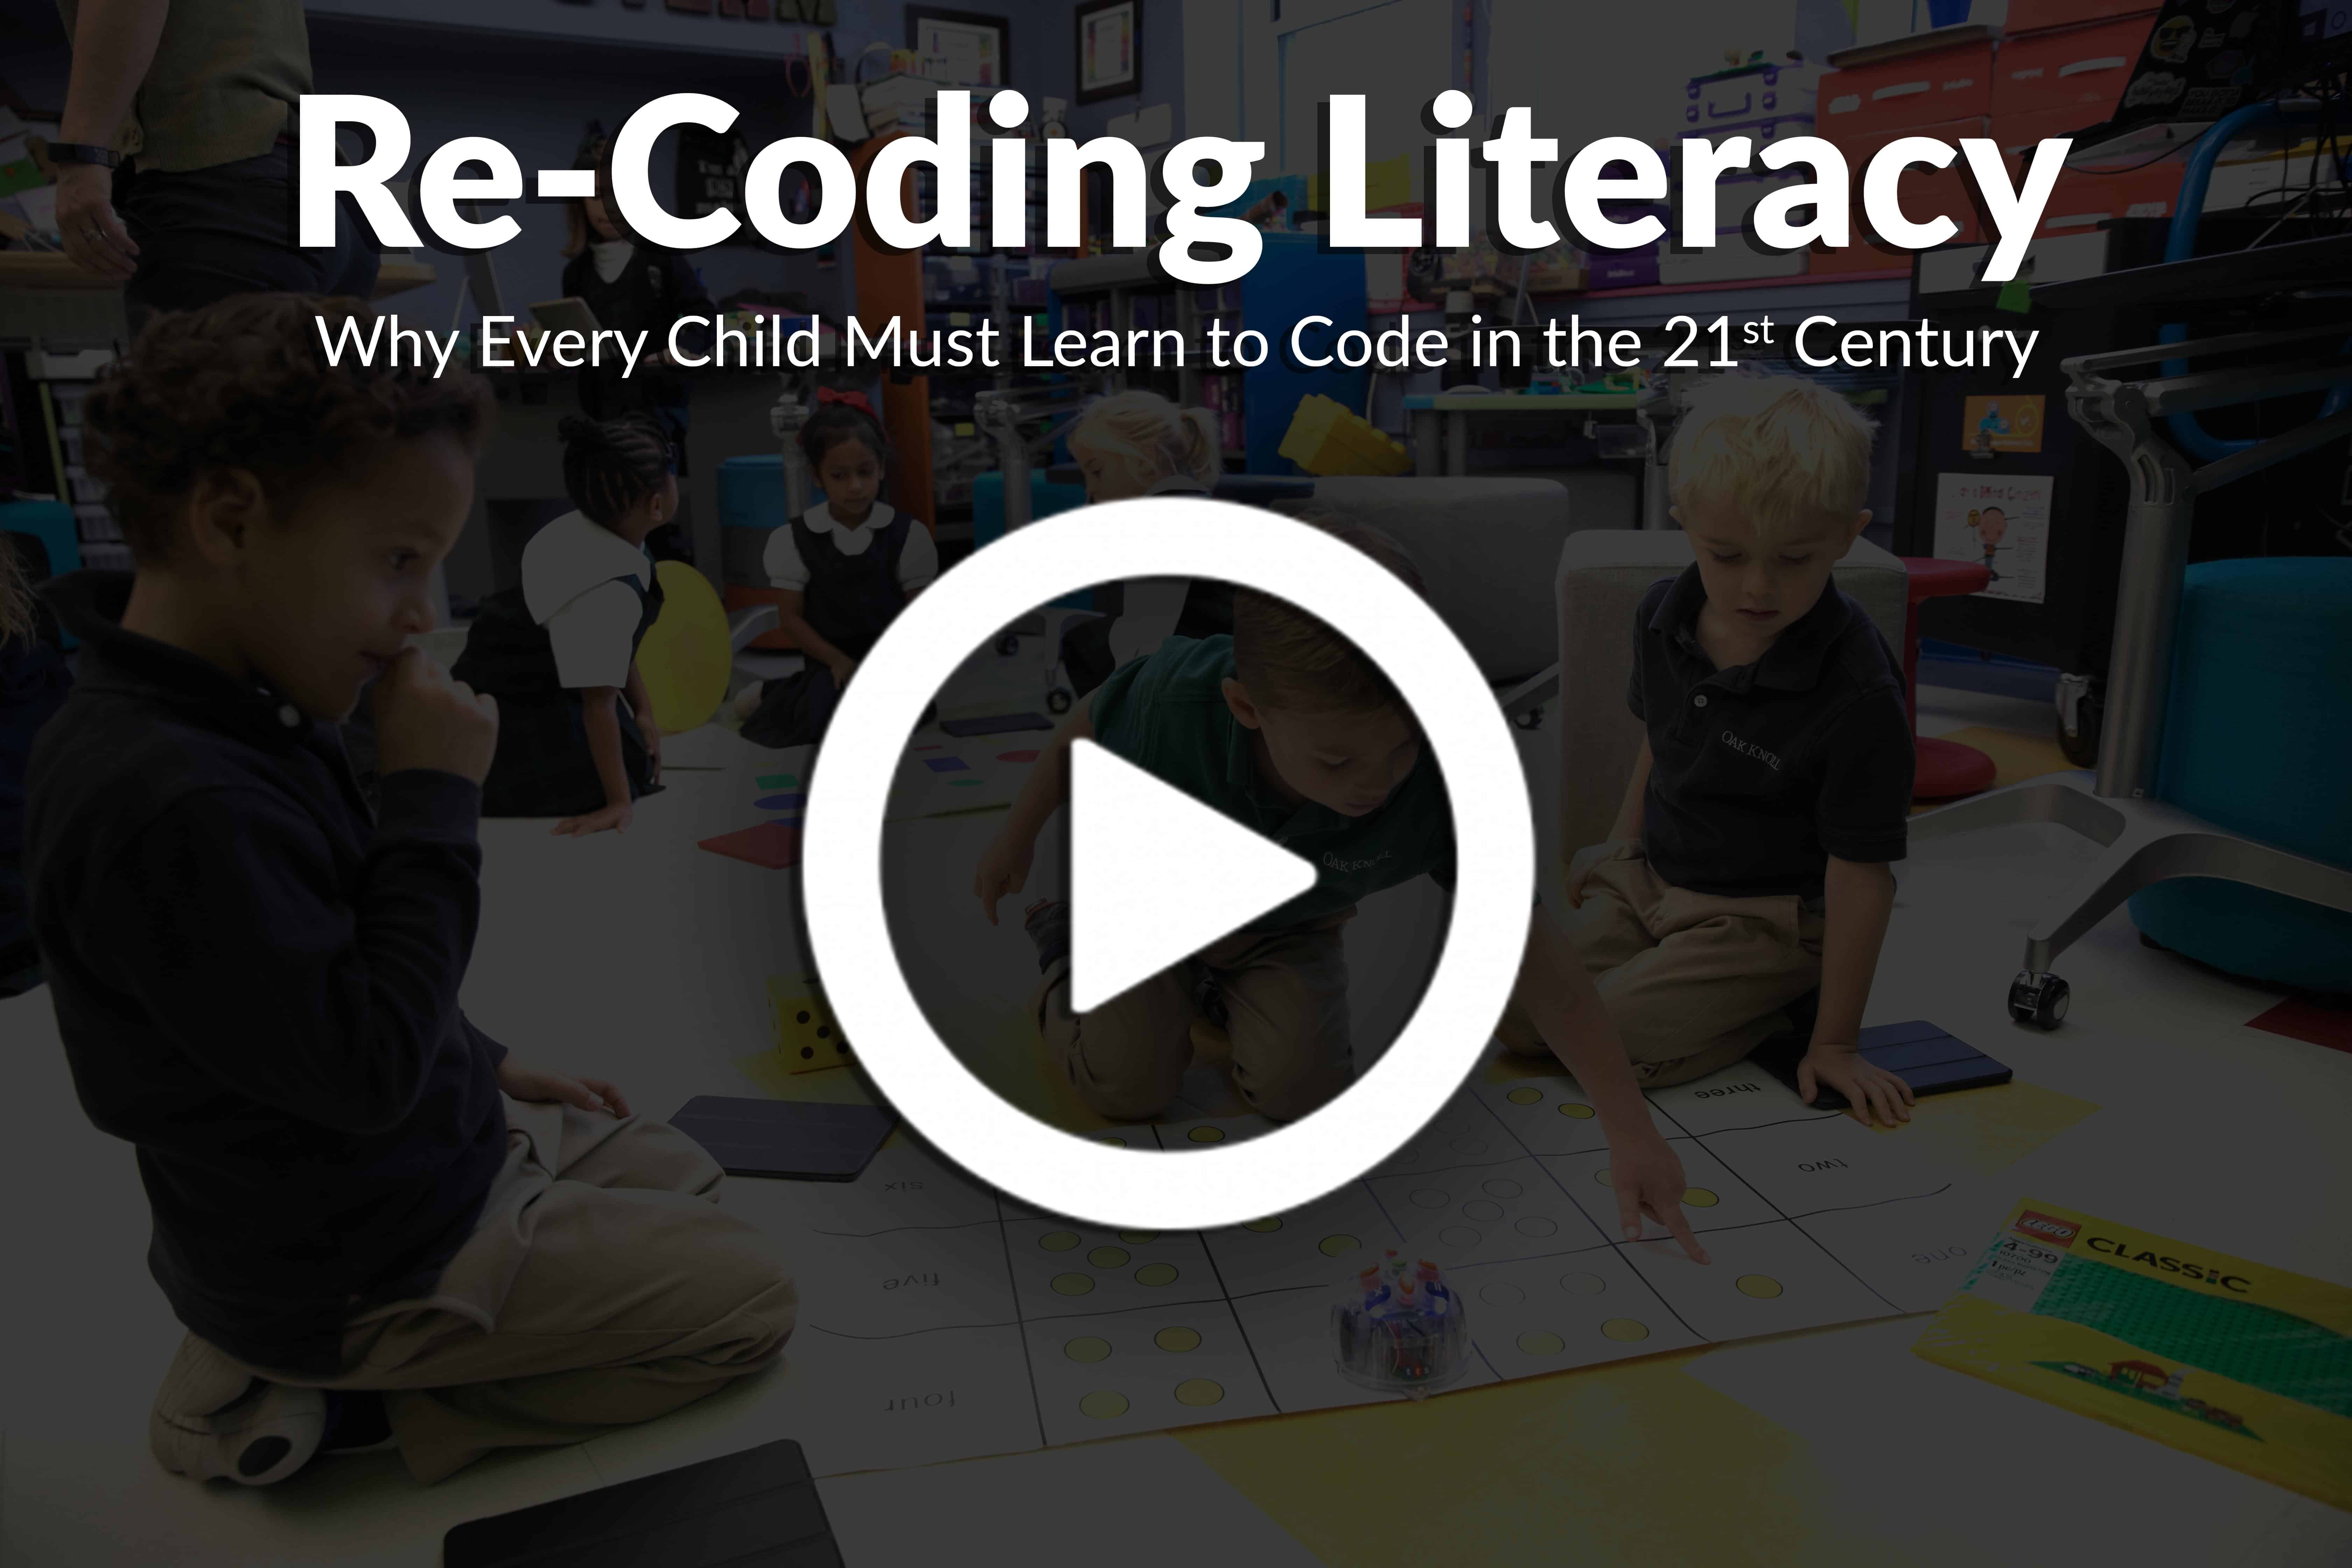 Re-Coding Literacy at Oak Knoll School